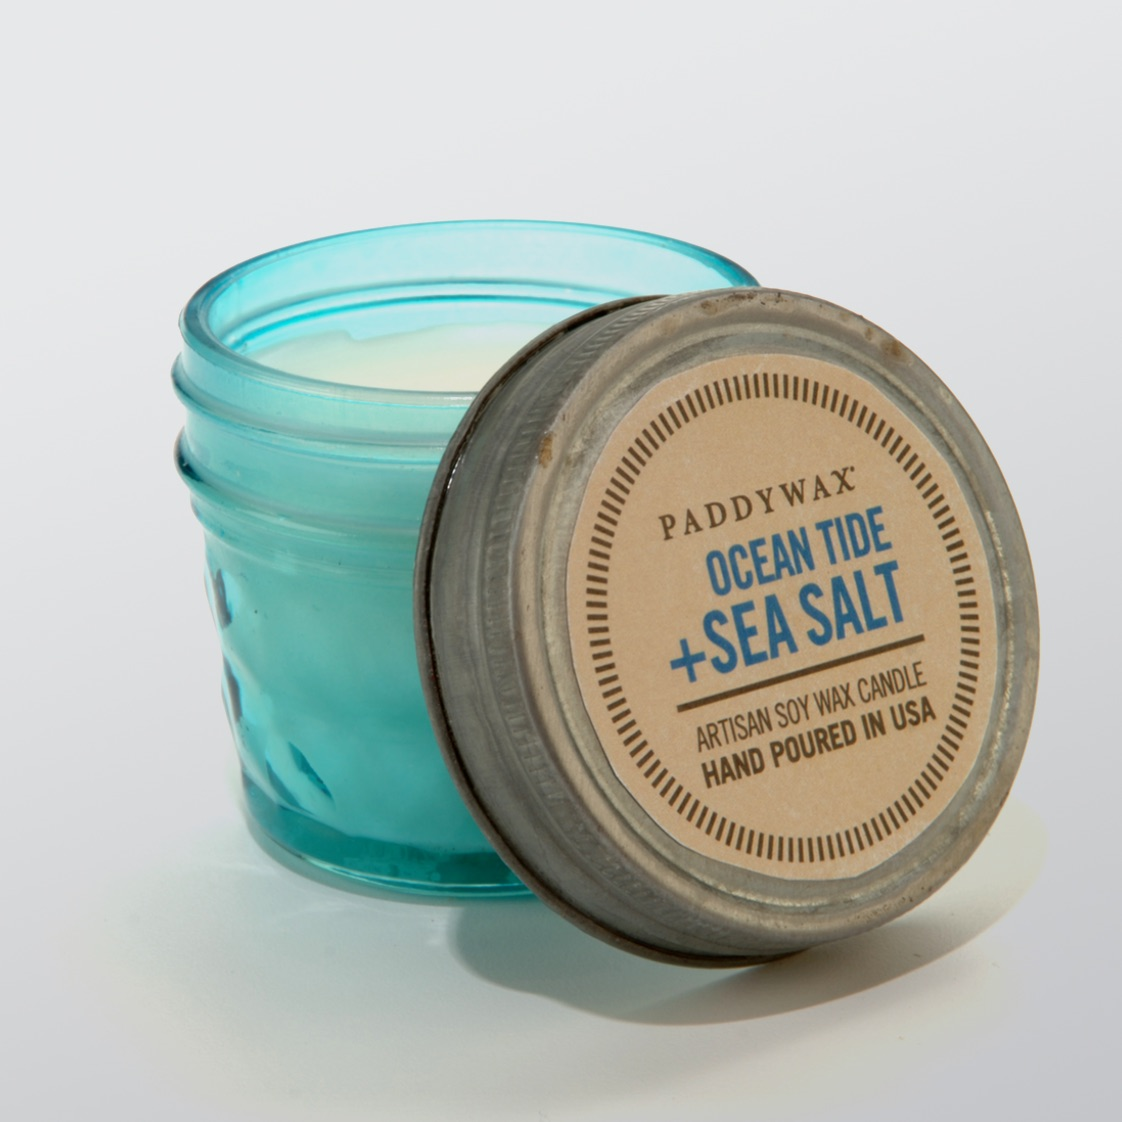 Ocean Tide & Sea Salt Relish Jar Candle